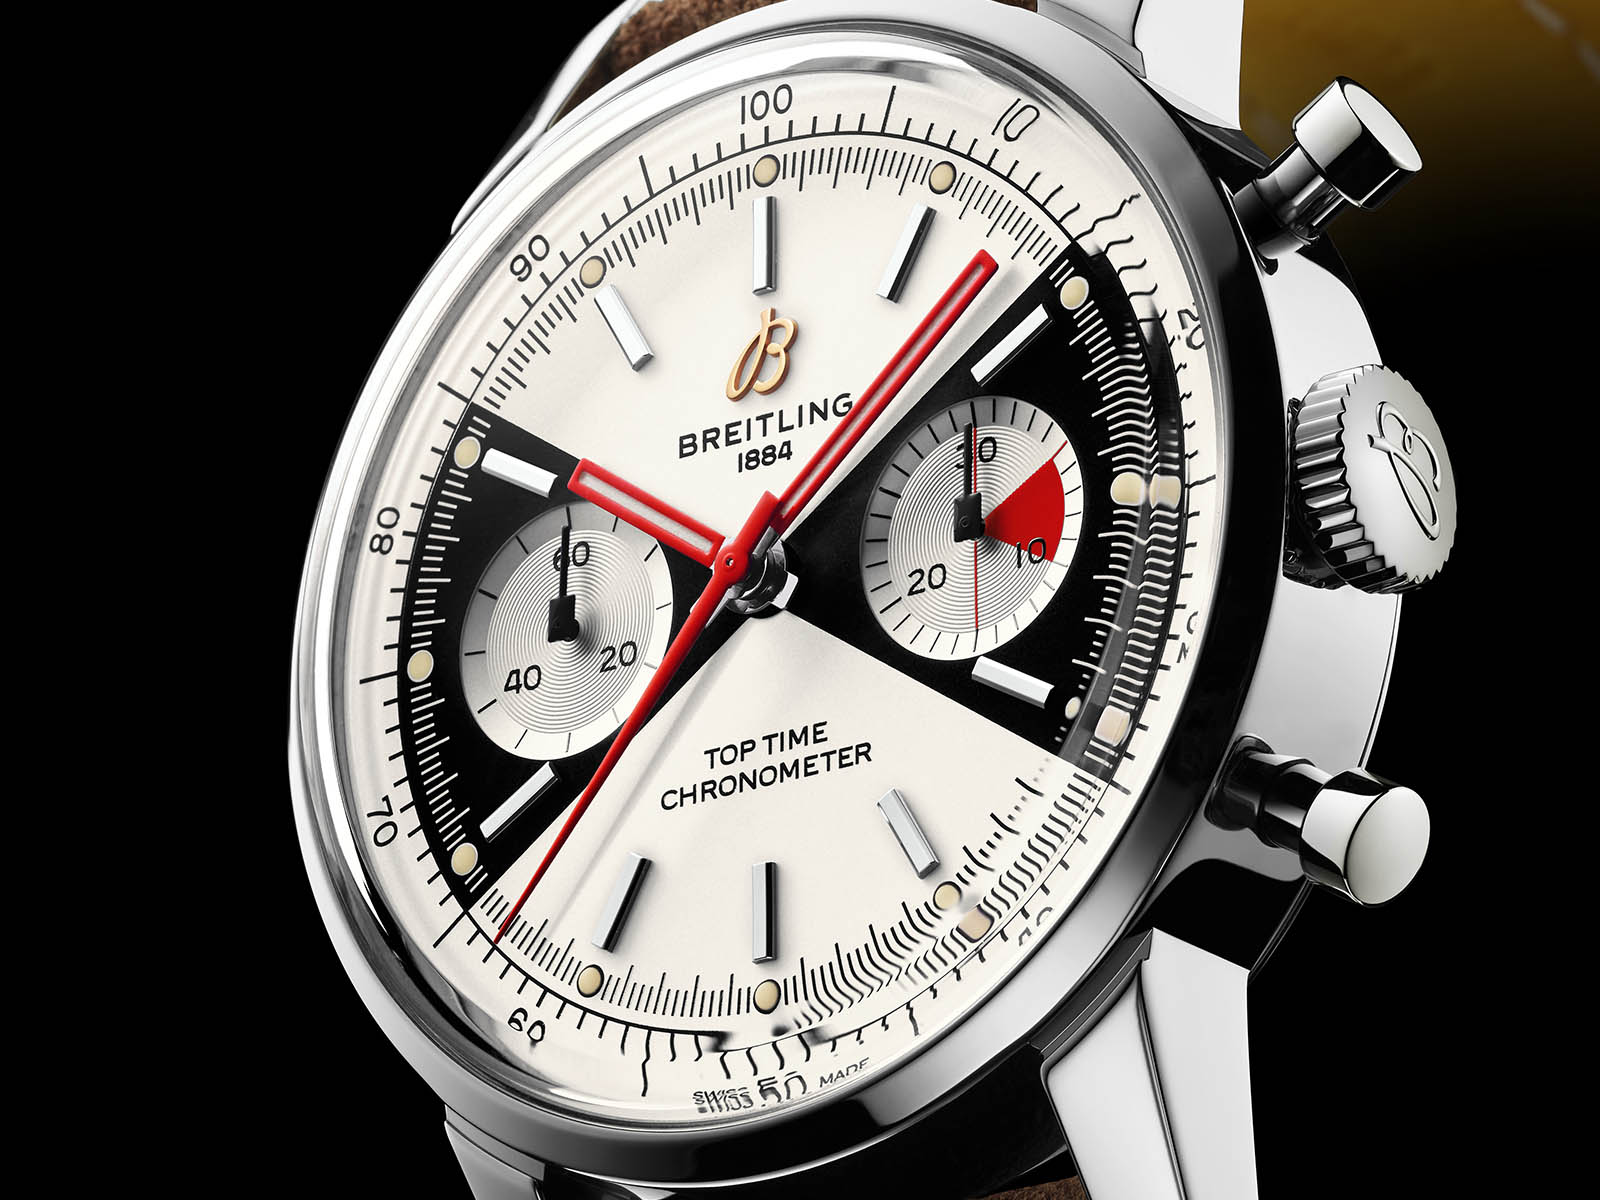 a23310121g1x1-breitling-top-time-limited-edition-5.jpg